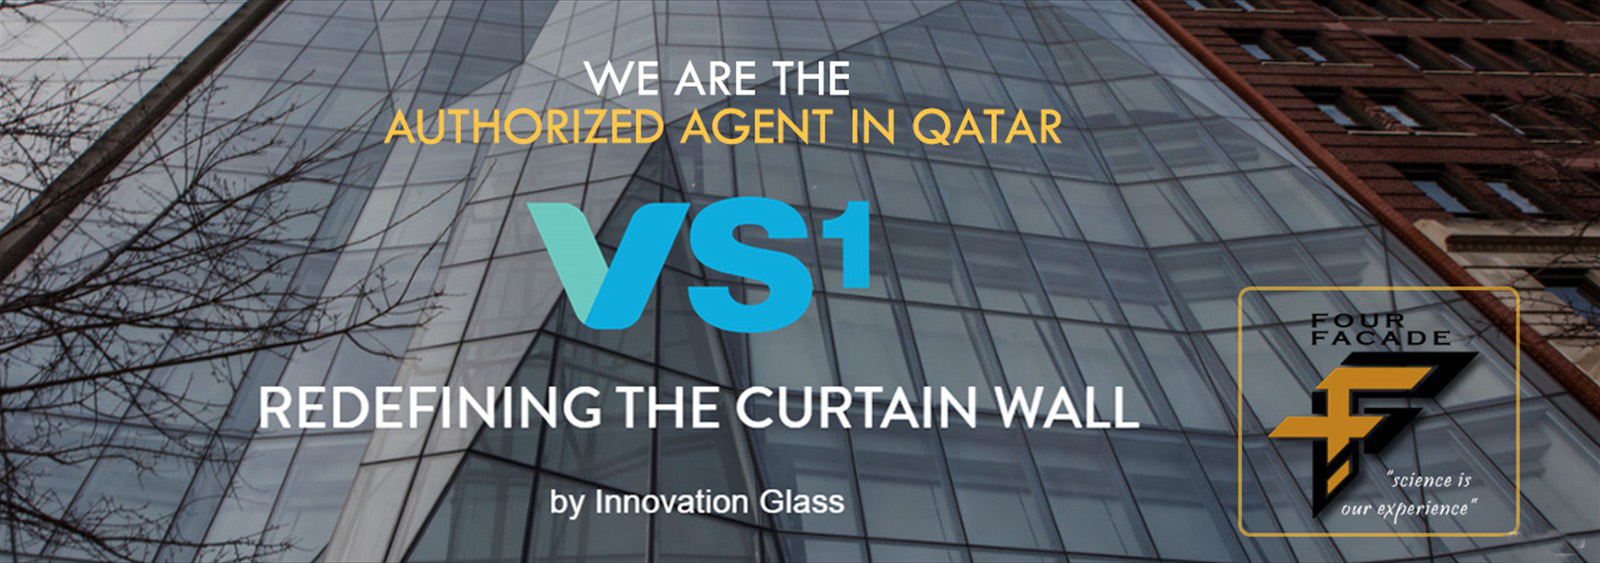 VS-1 CURTAIN WALL SYSTEM